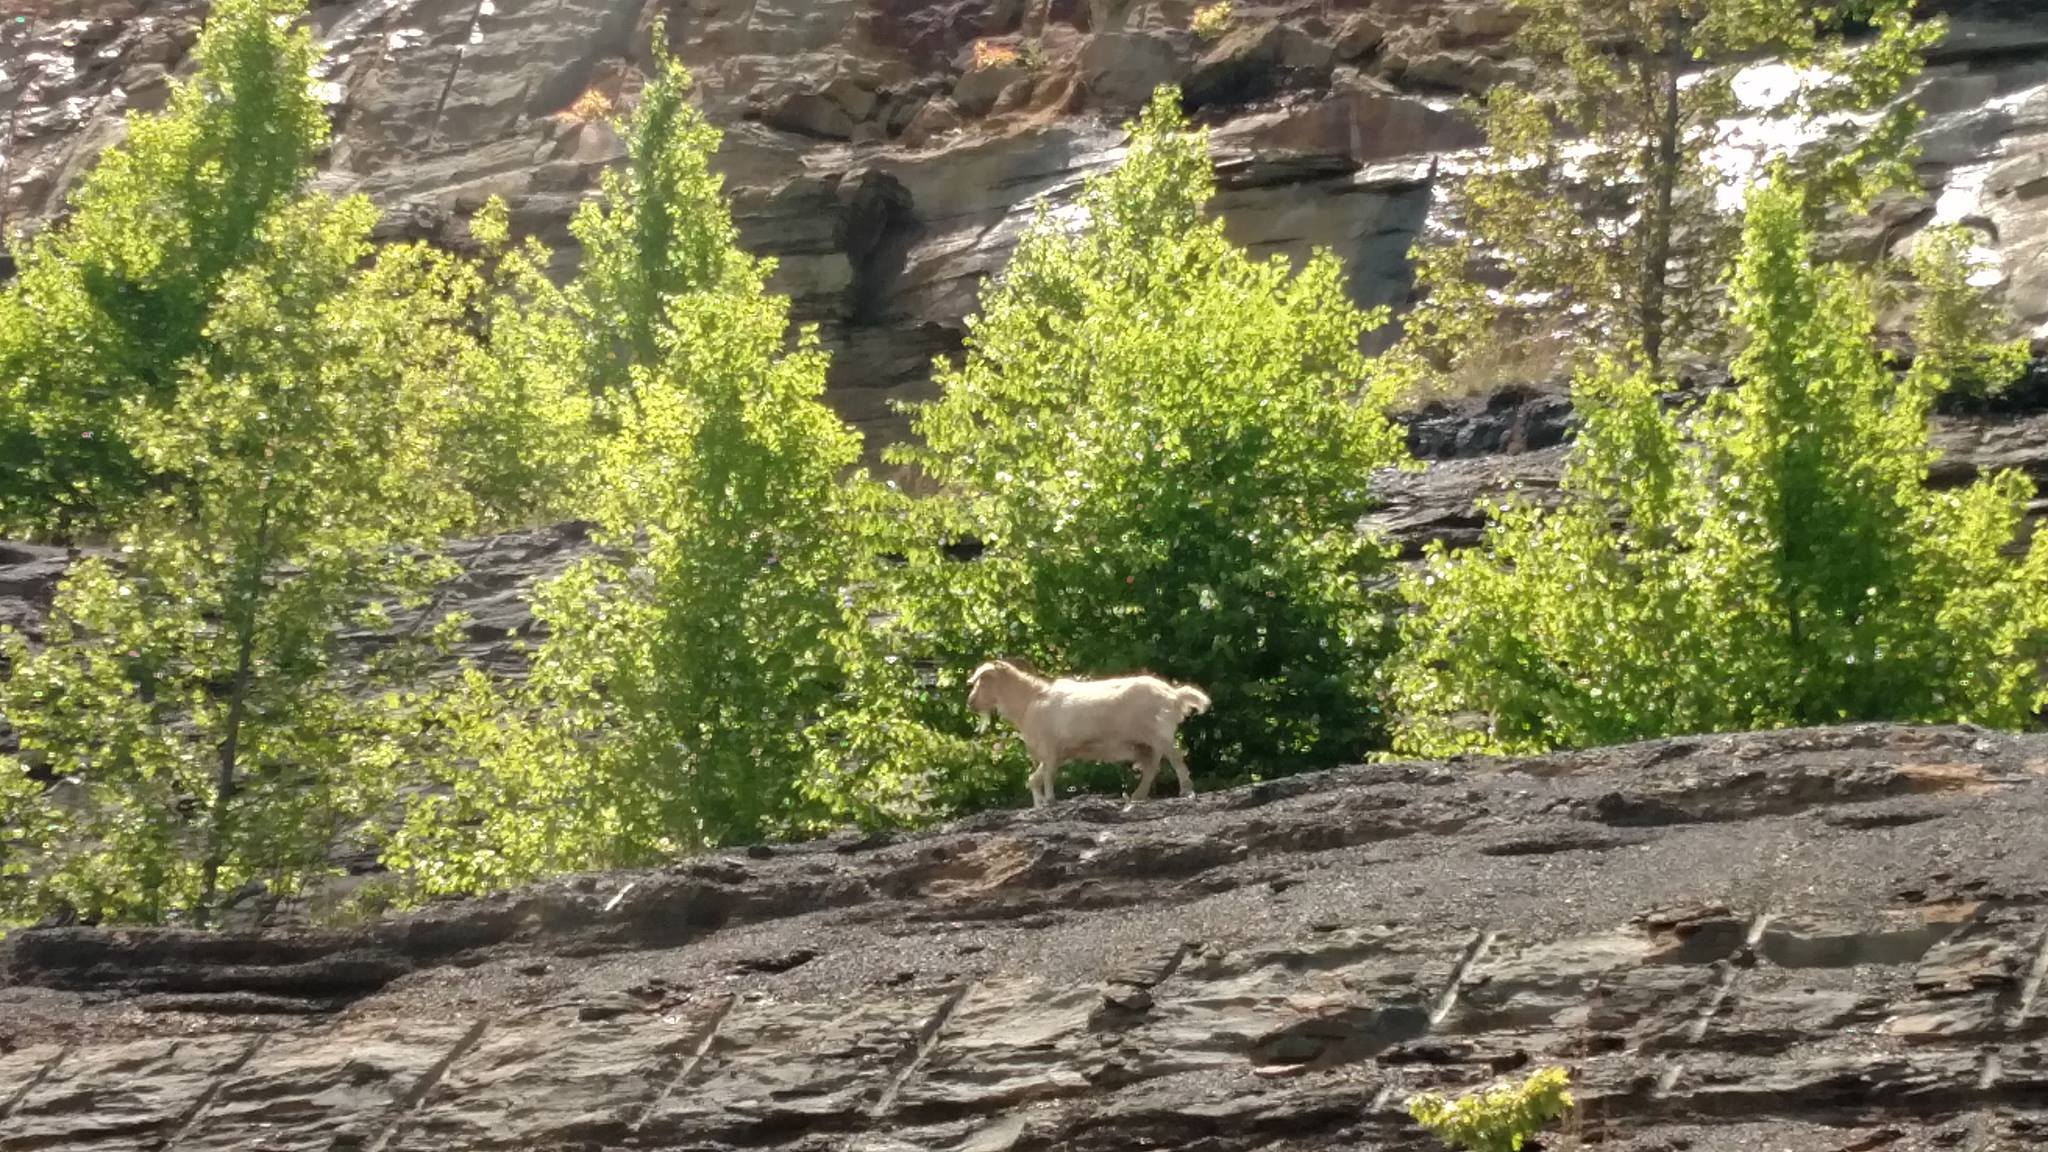 The Powell's Mountain Goat Is A Living Legend in West Virginia